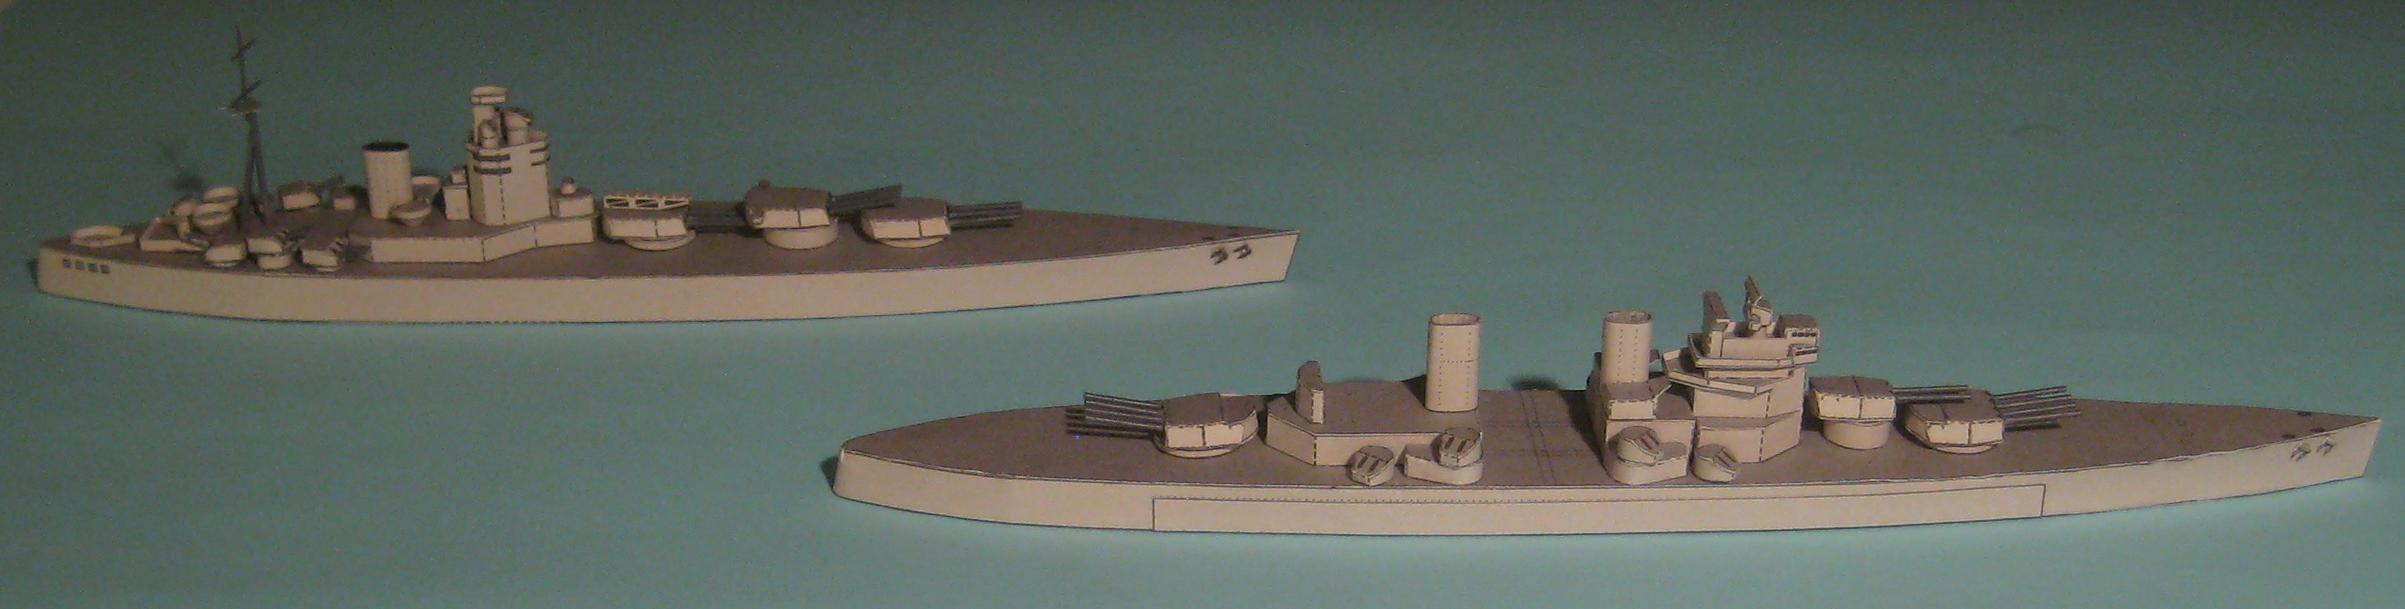 My new 3-D 1:1200 card models of ships, complementing the Airfix